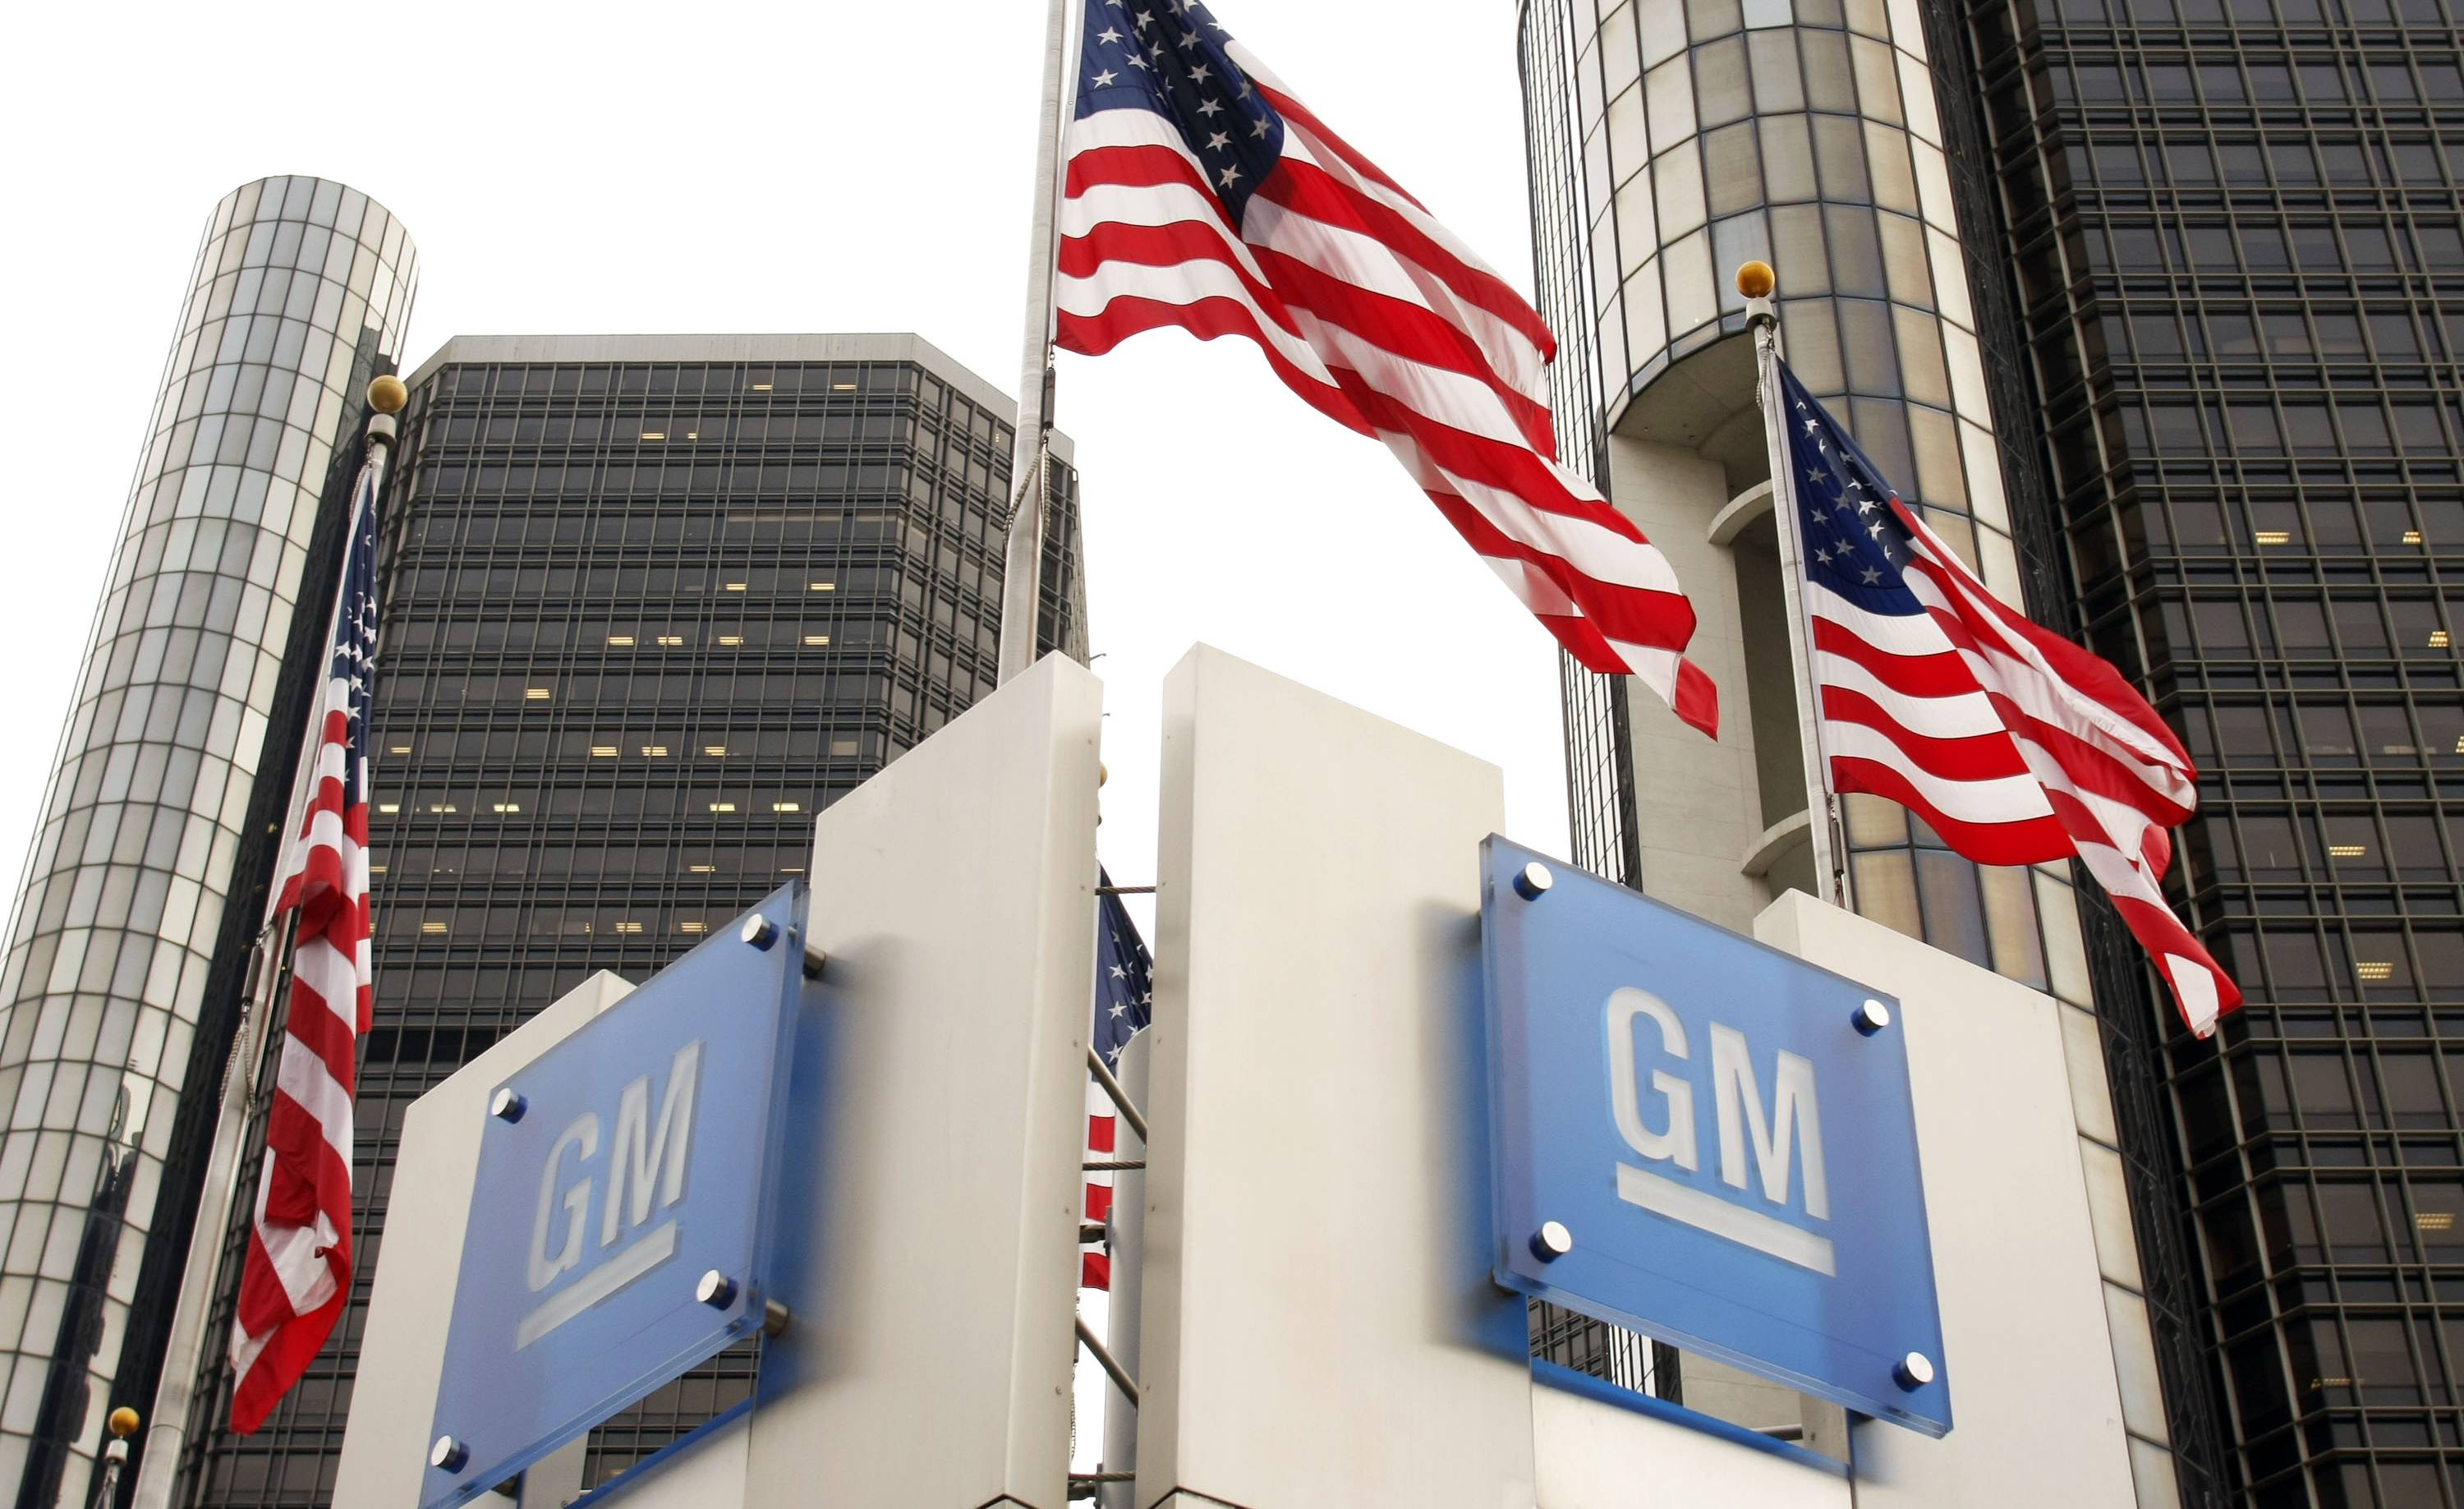 General Motors Offers Stocks At $33 A Share For Initial Public Offering